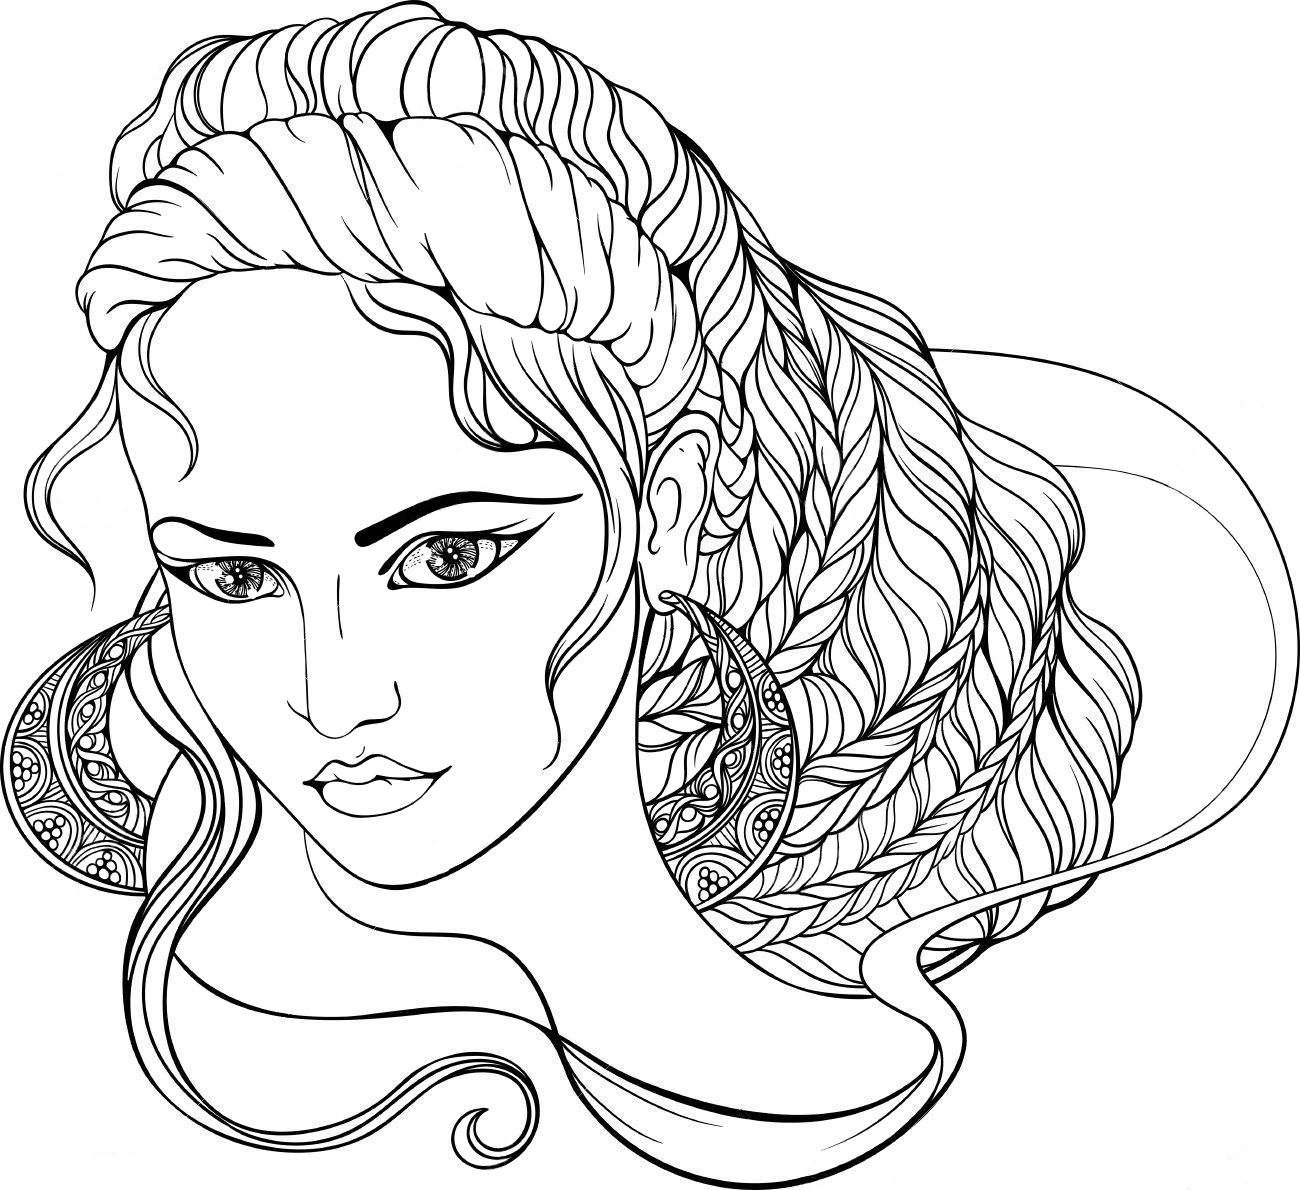 Greek goddess - Coloring pages for you